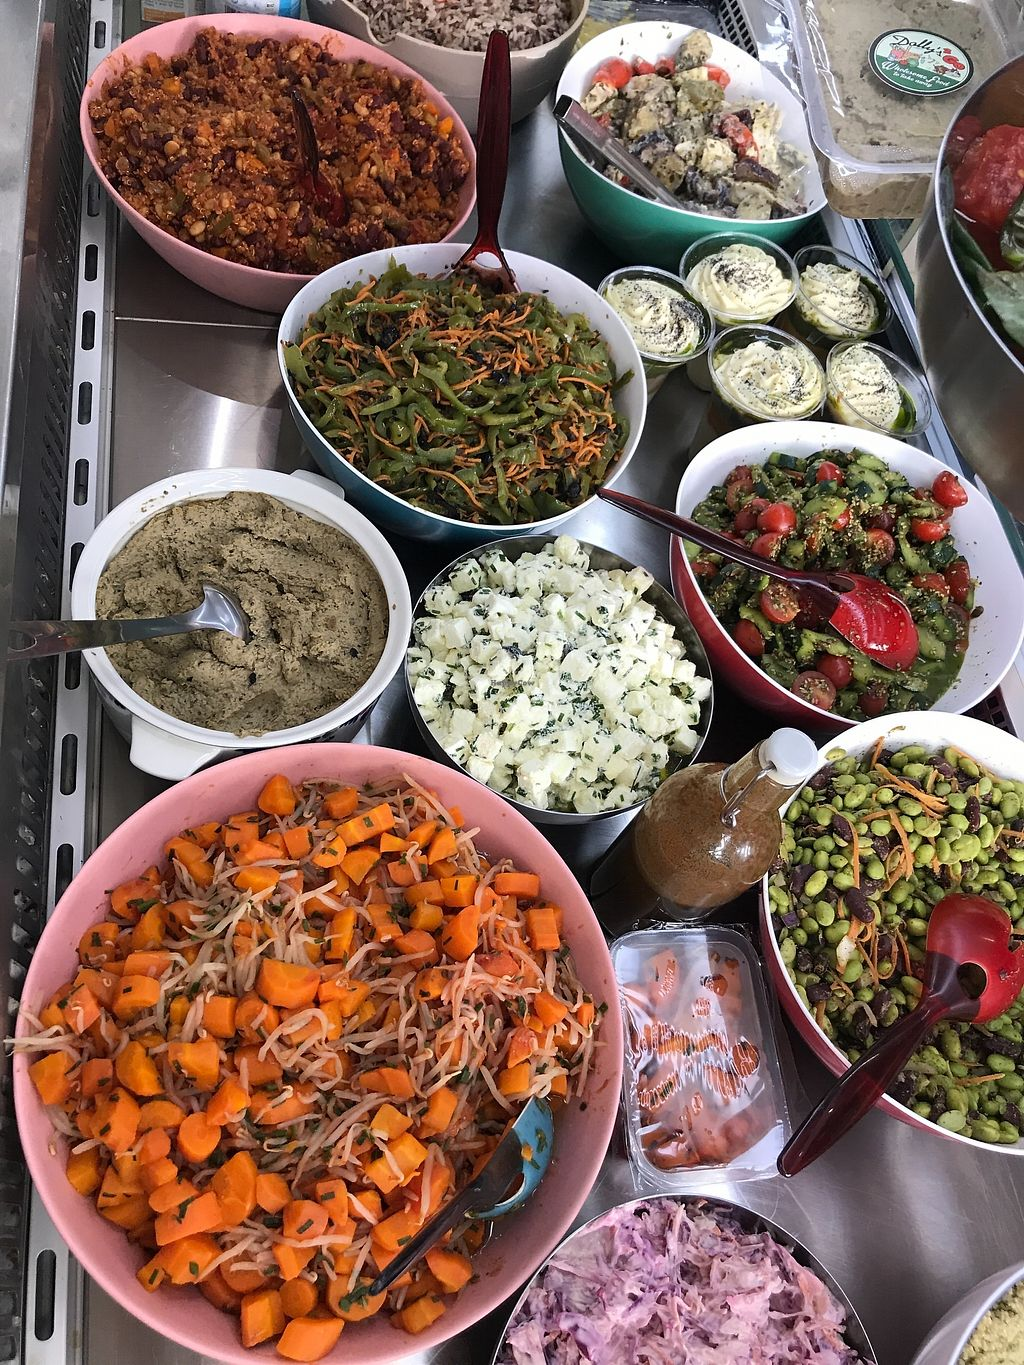 """Photo of Dollys2go  by <a href=""""/members/profile/Greedygutsgirl"""">Greedygutsgirl</a> <br/>Choose your ingredients for toasted wraps from the colorful salads. Enjoy hot falafels with different types of houmous. There are also gluten free options for all sandwiches and buckwheat blinis <br/> August 11, 2017  - <a href='/contact/abuse/image/98354/291645'>Report</a>"""